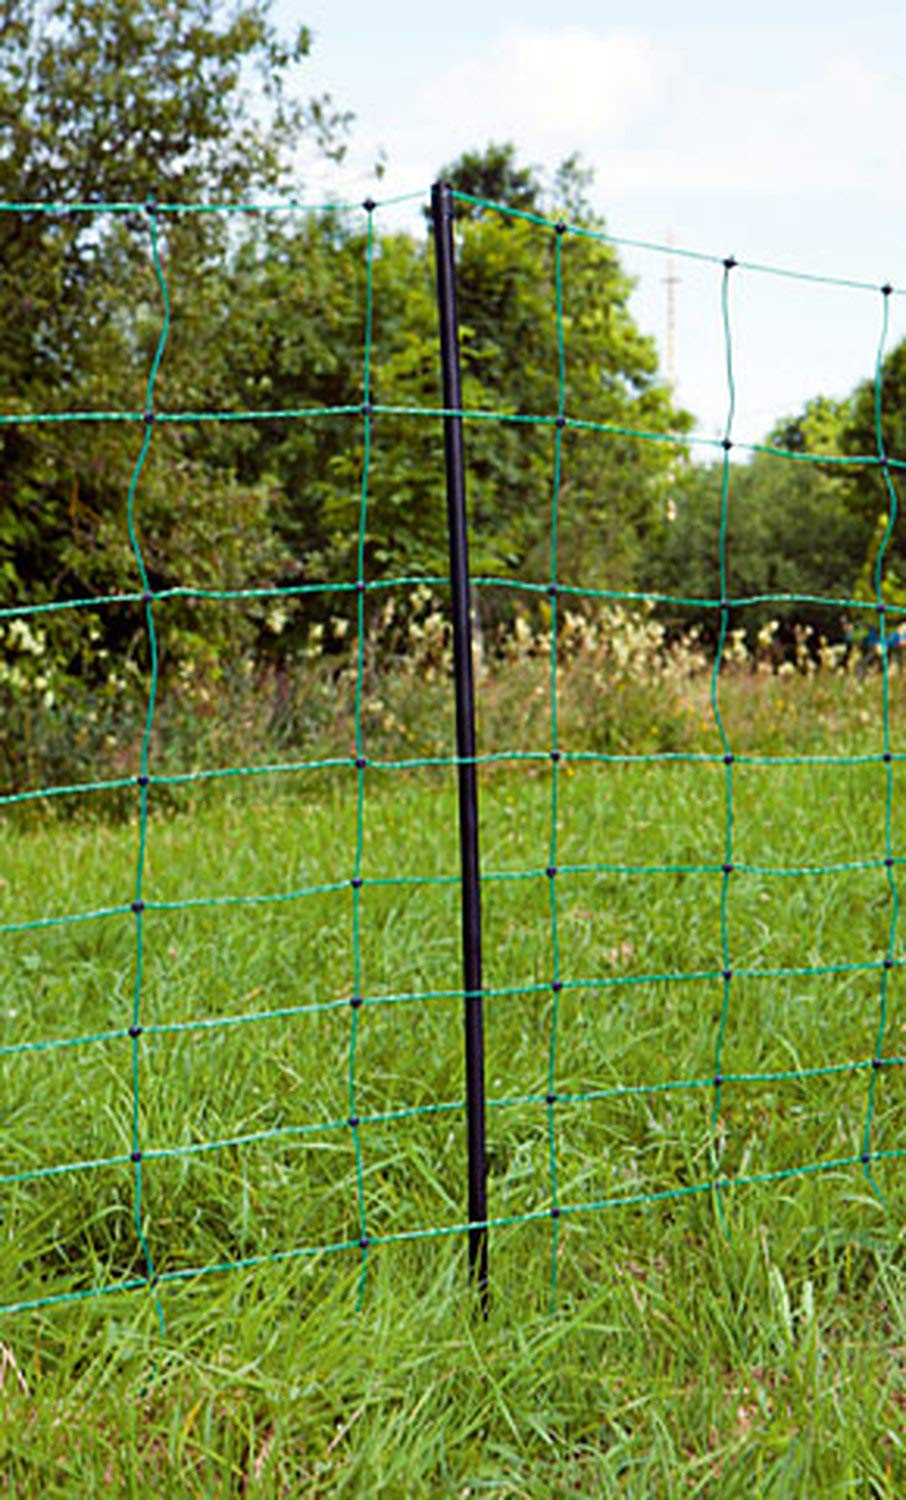 Kerbl Electrifiable Sheep Netting for Universal Use 14 stable plastic posts length 50 m electrifiable horizontals through 3 x 0.20 mm stainless steel conductors per strand double prong